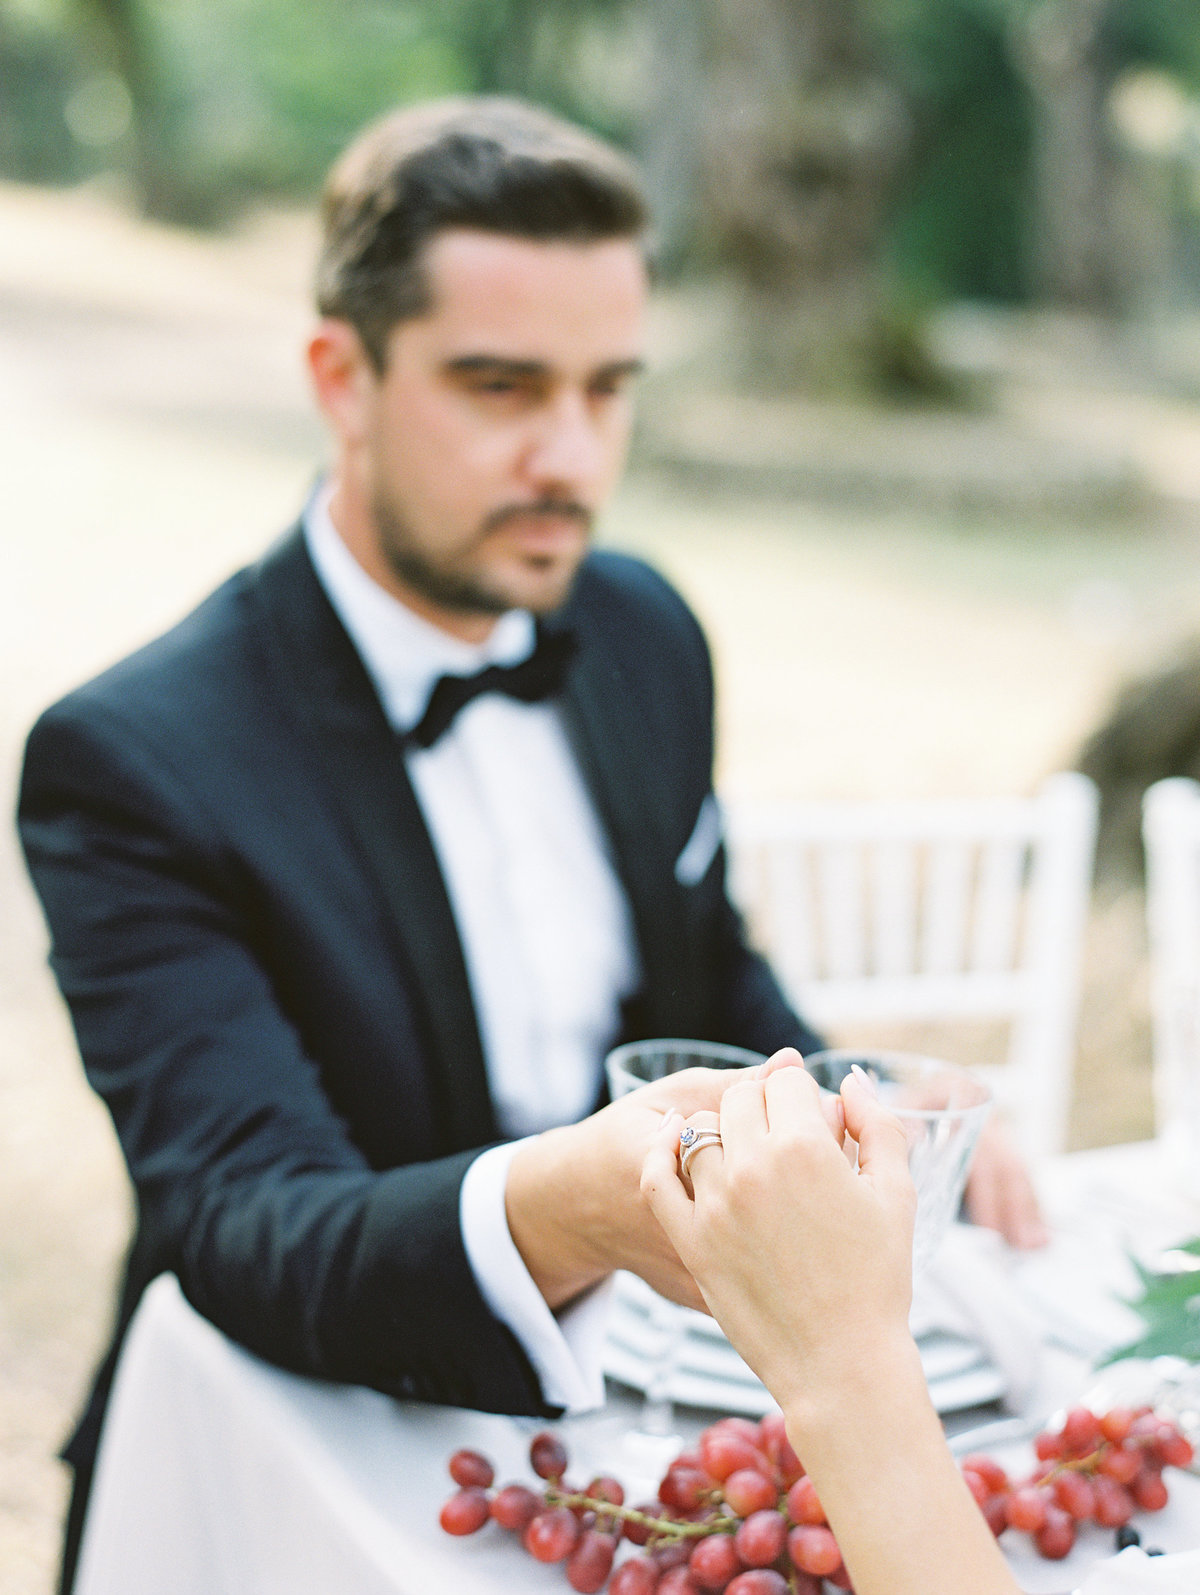 fine art wedding photography in corfu by Kostis Mouselimis on film_046